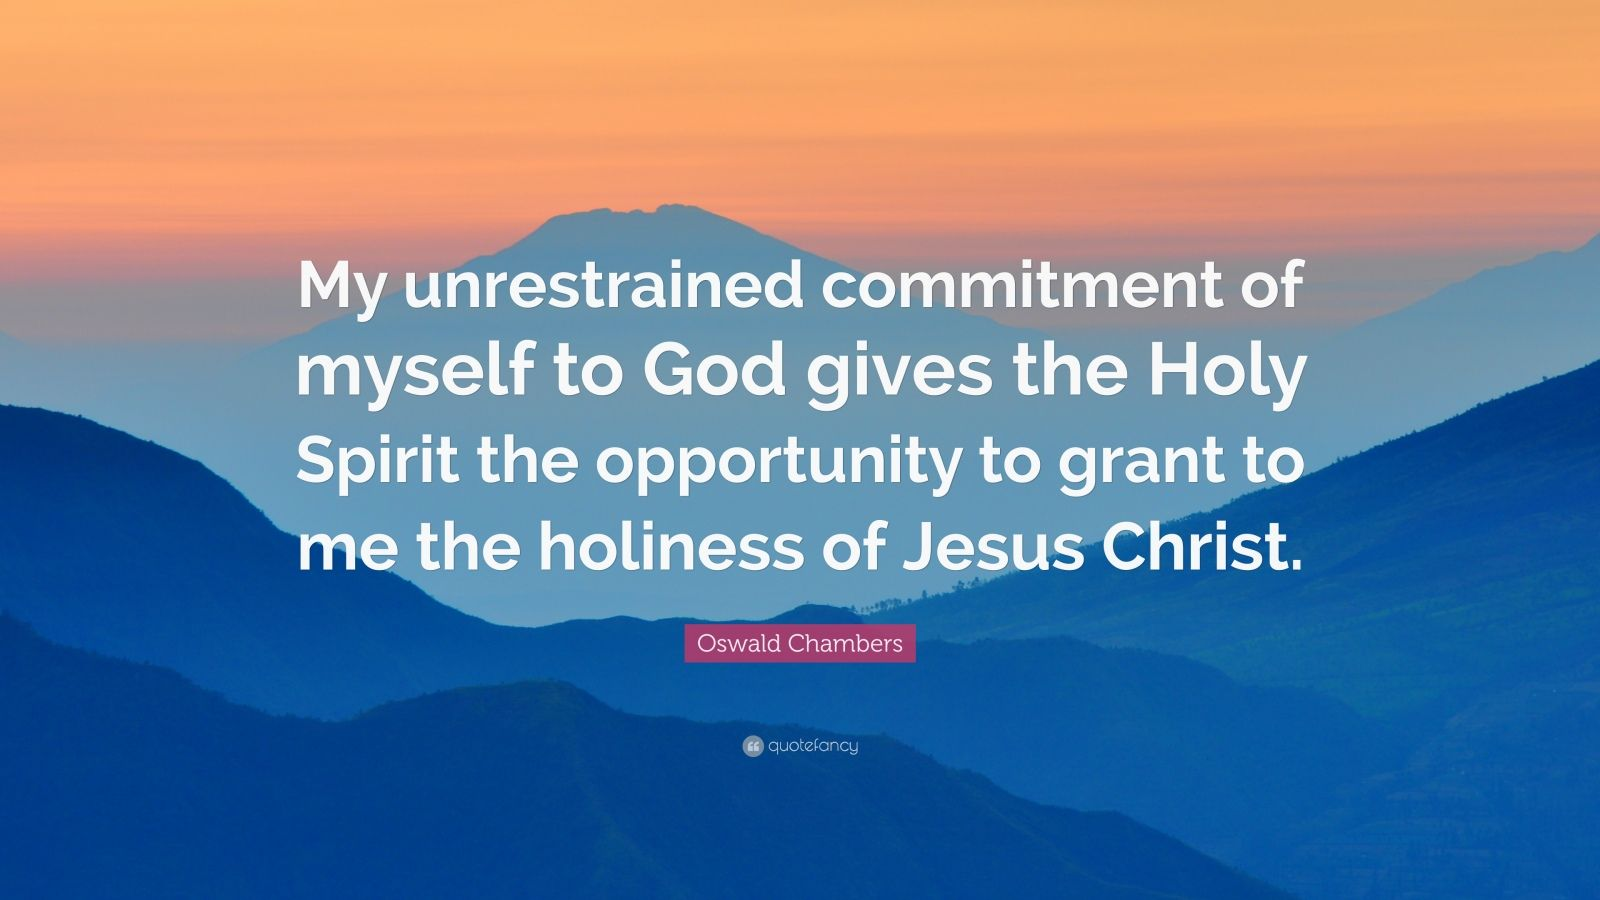 """Oswald Chambers Quote: """"My unrestrained commitment of myself to God gives the Holy Spirit the opportunity to grant to me the holiness of Jesus Christ."""""""